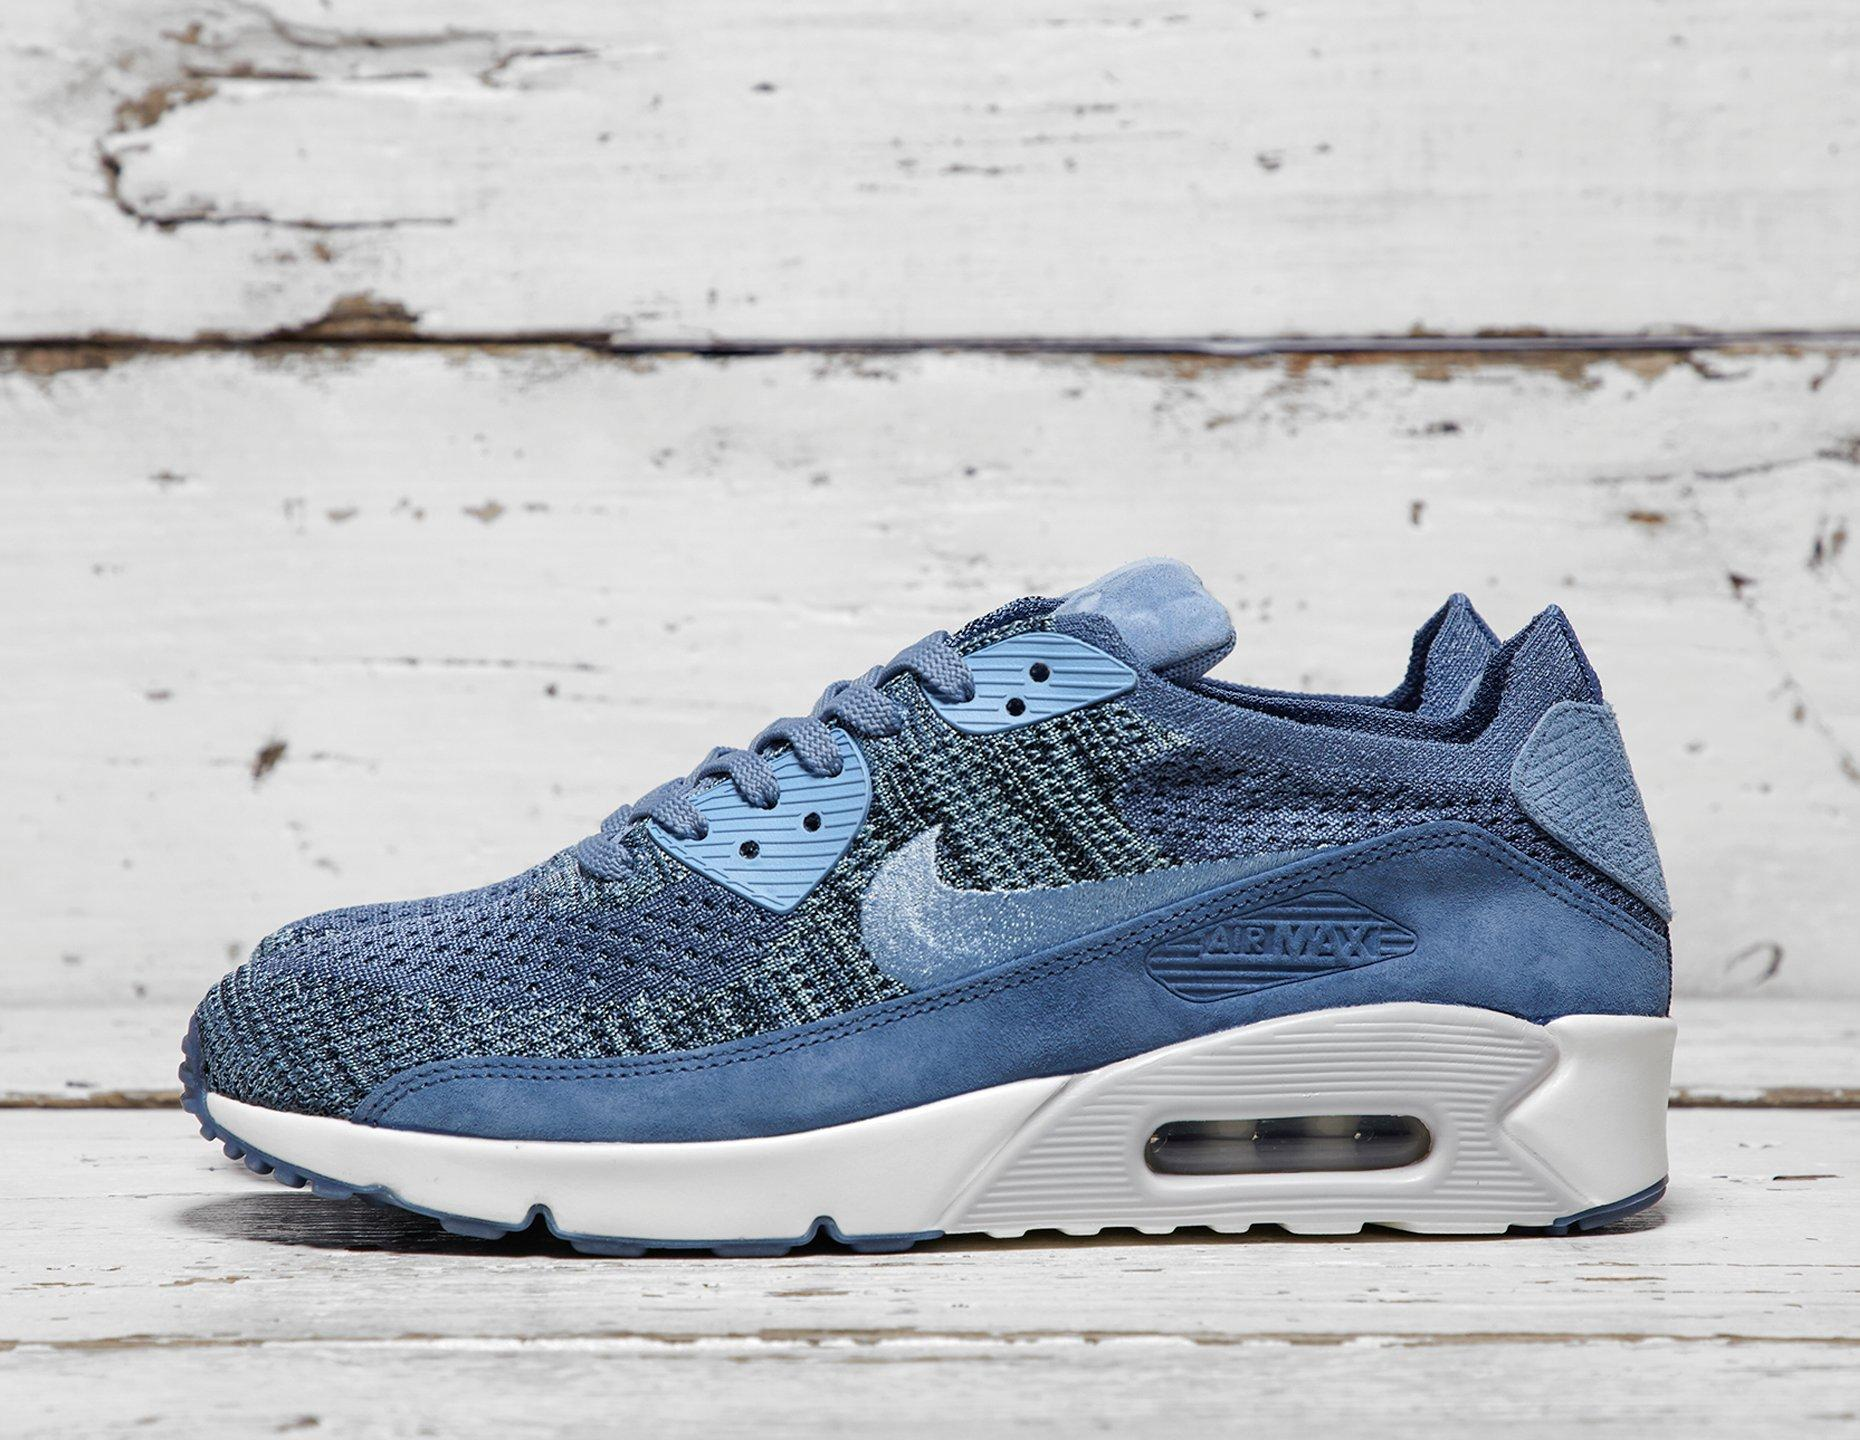 cheap for discount 93160 21c0a nikelab air max 90 flyknit blue - WearTesters